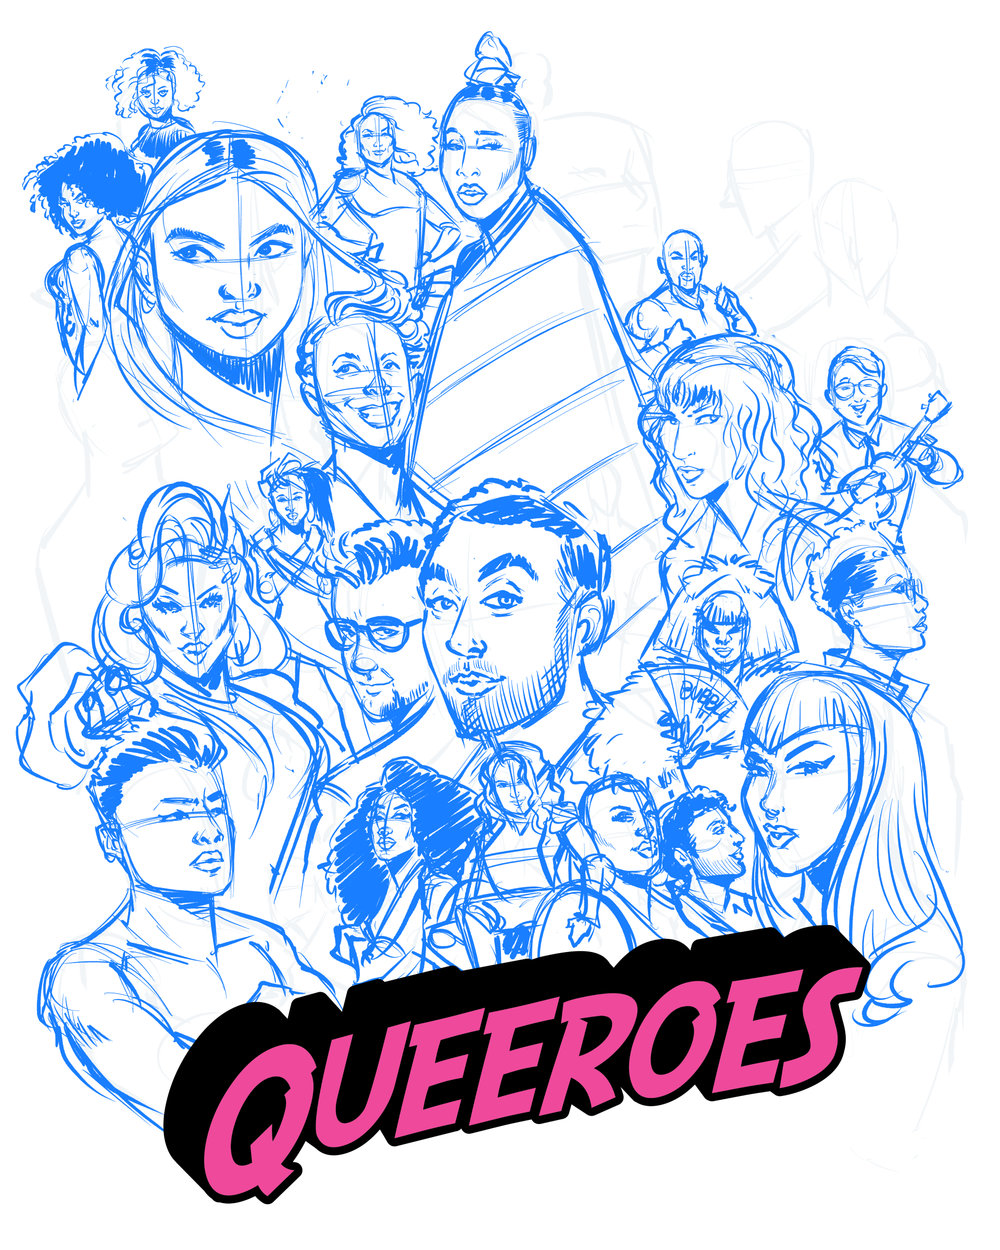 queeroes-roughsketch.jpg